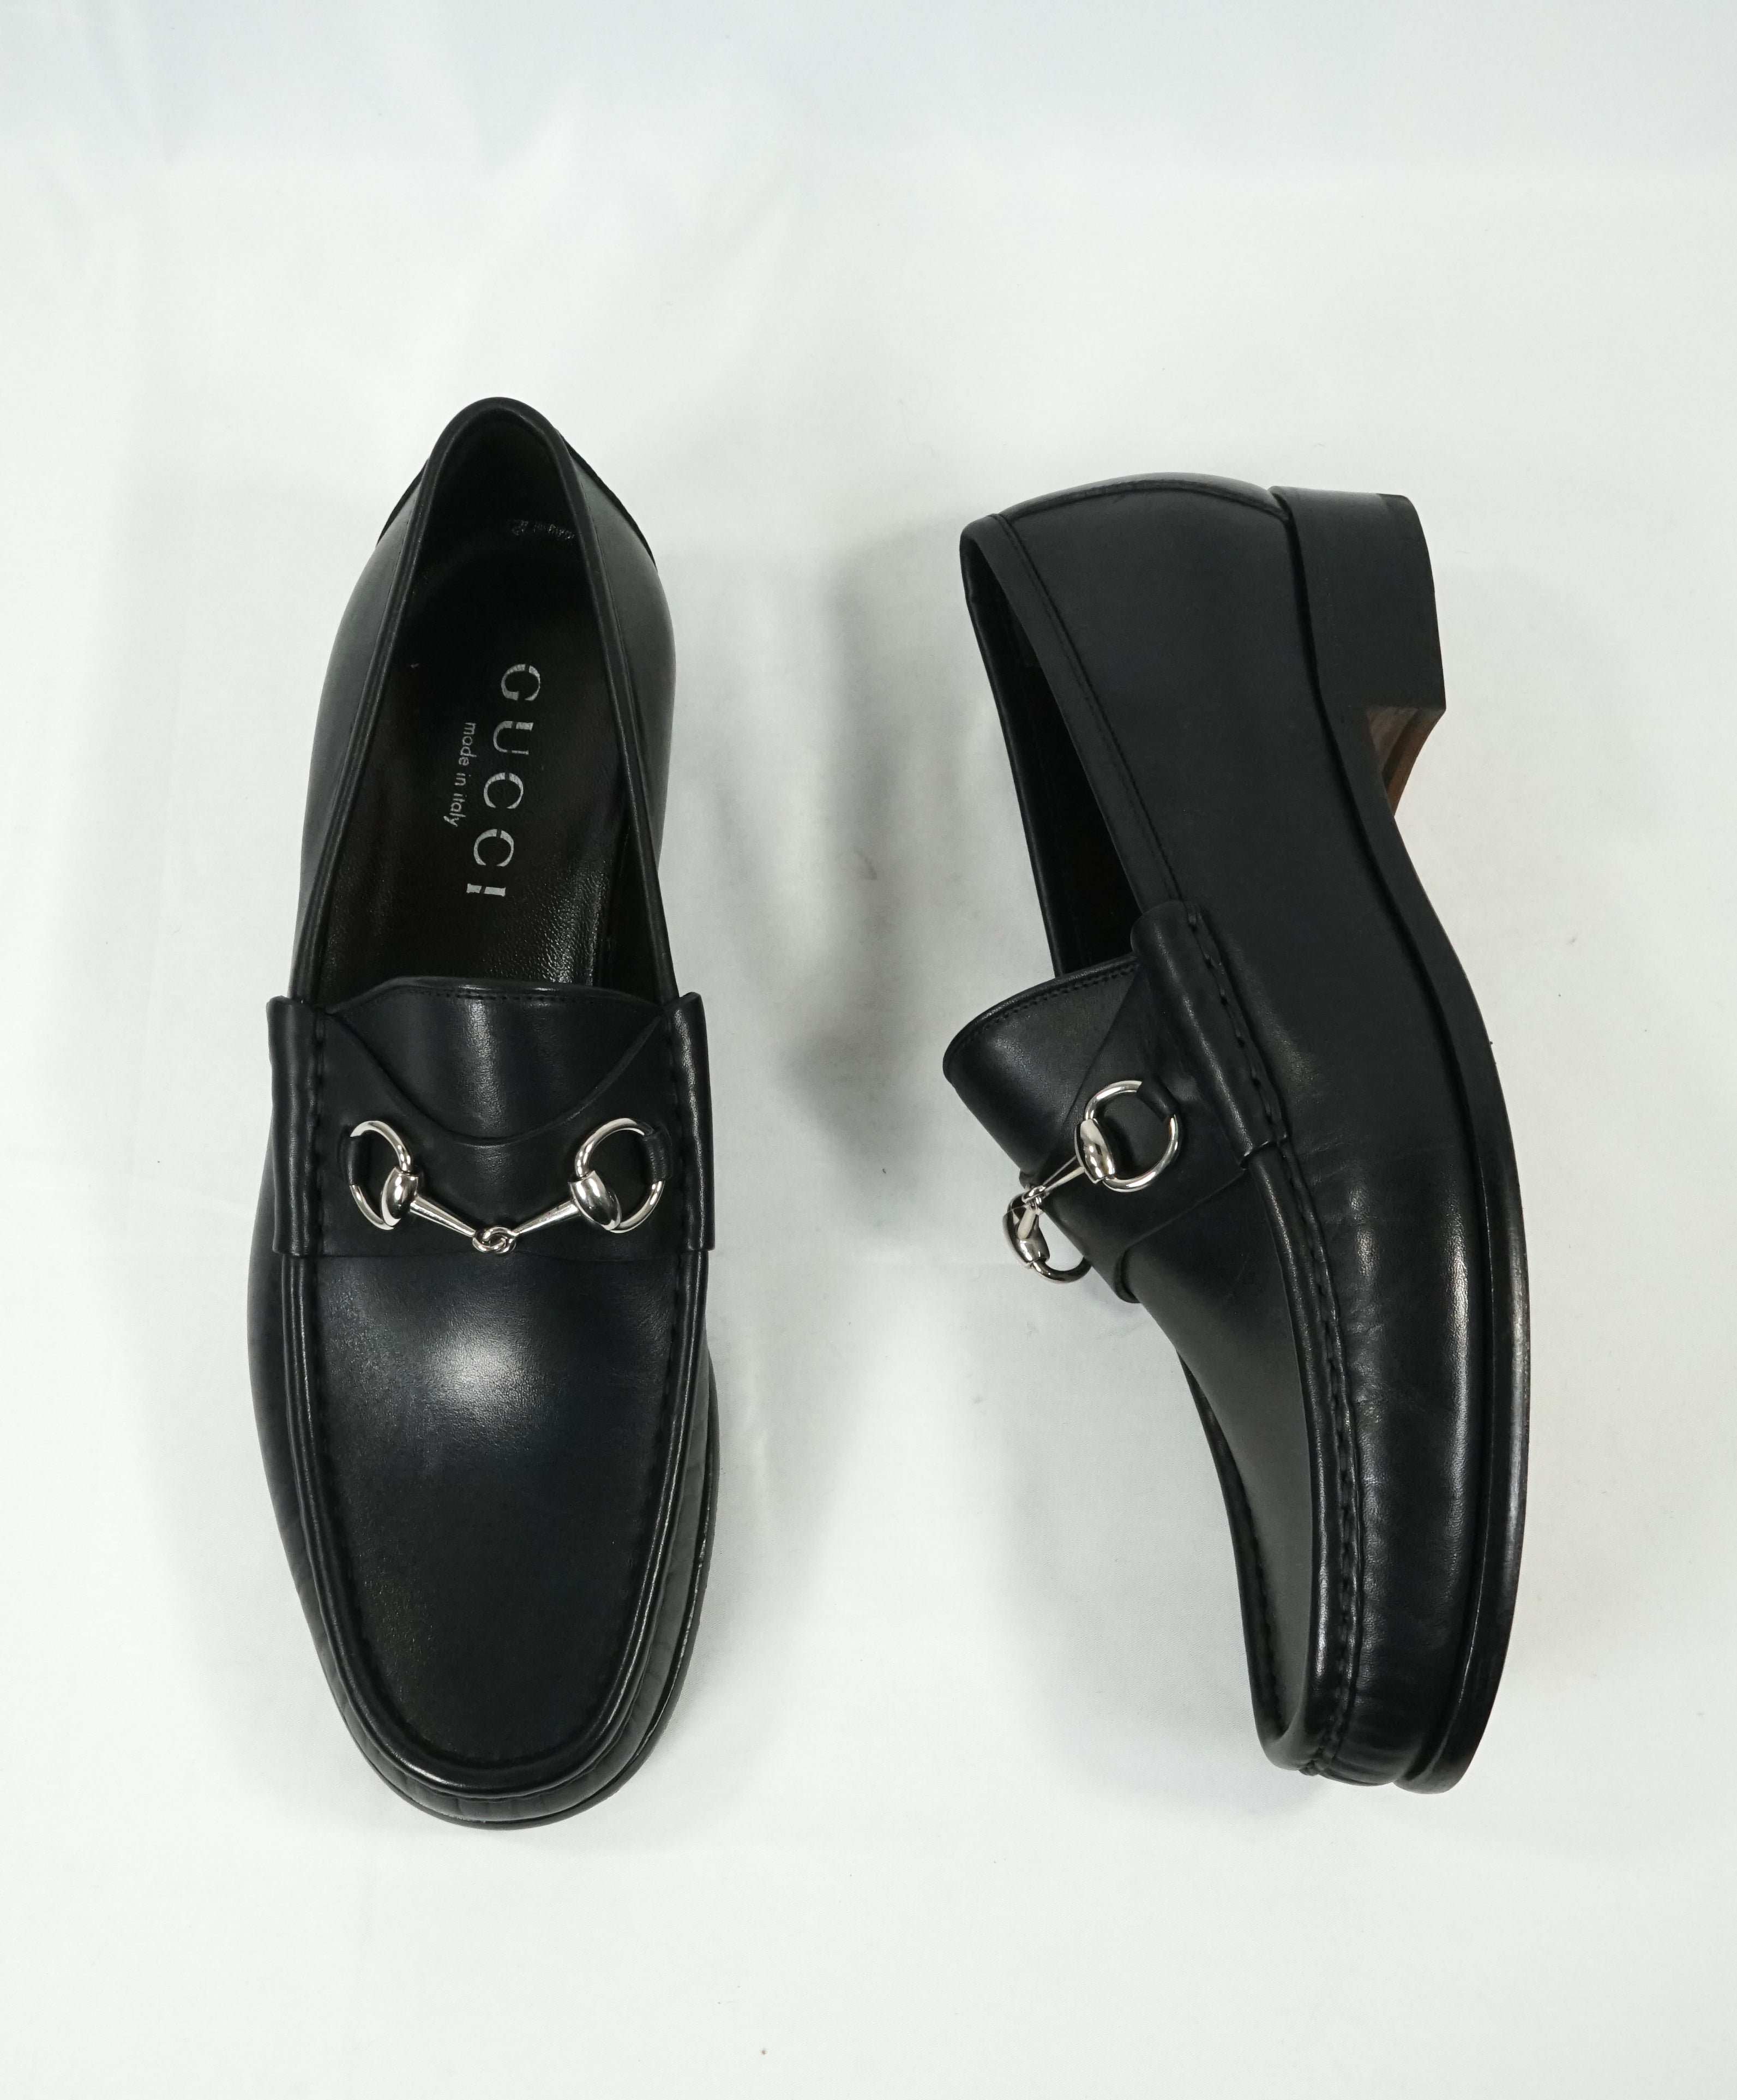 GUCCI - Horse-bit Leather sole Loafers Black Iconic Style - 11